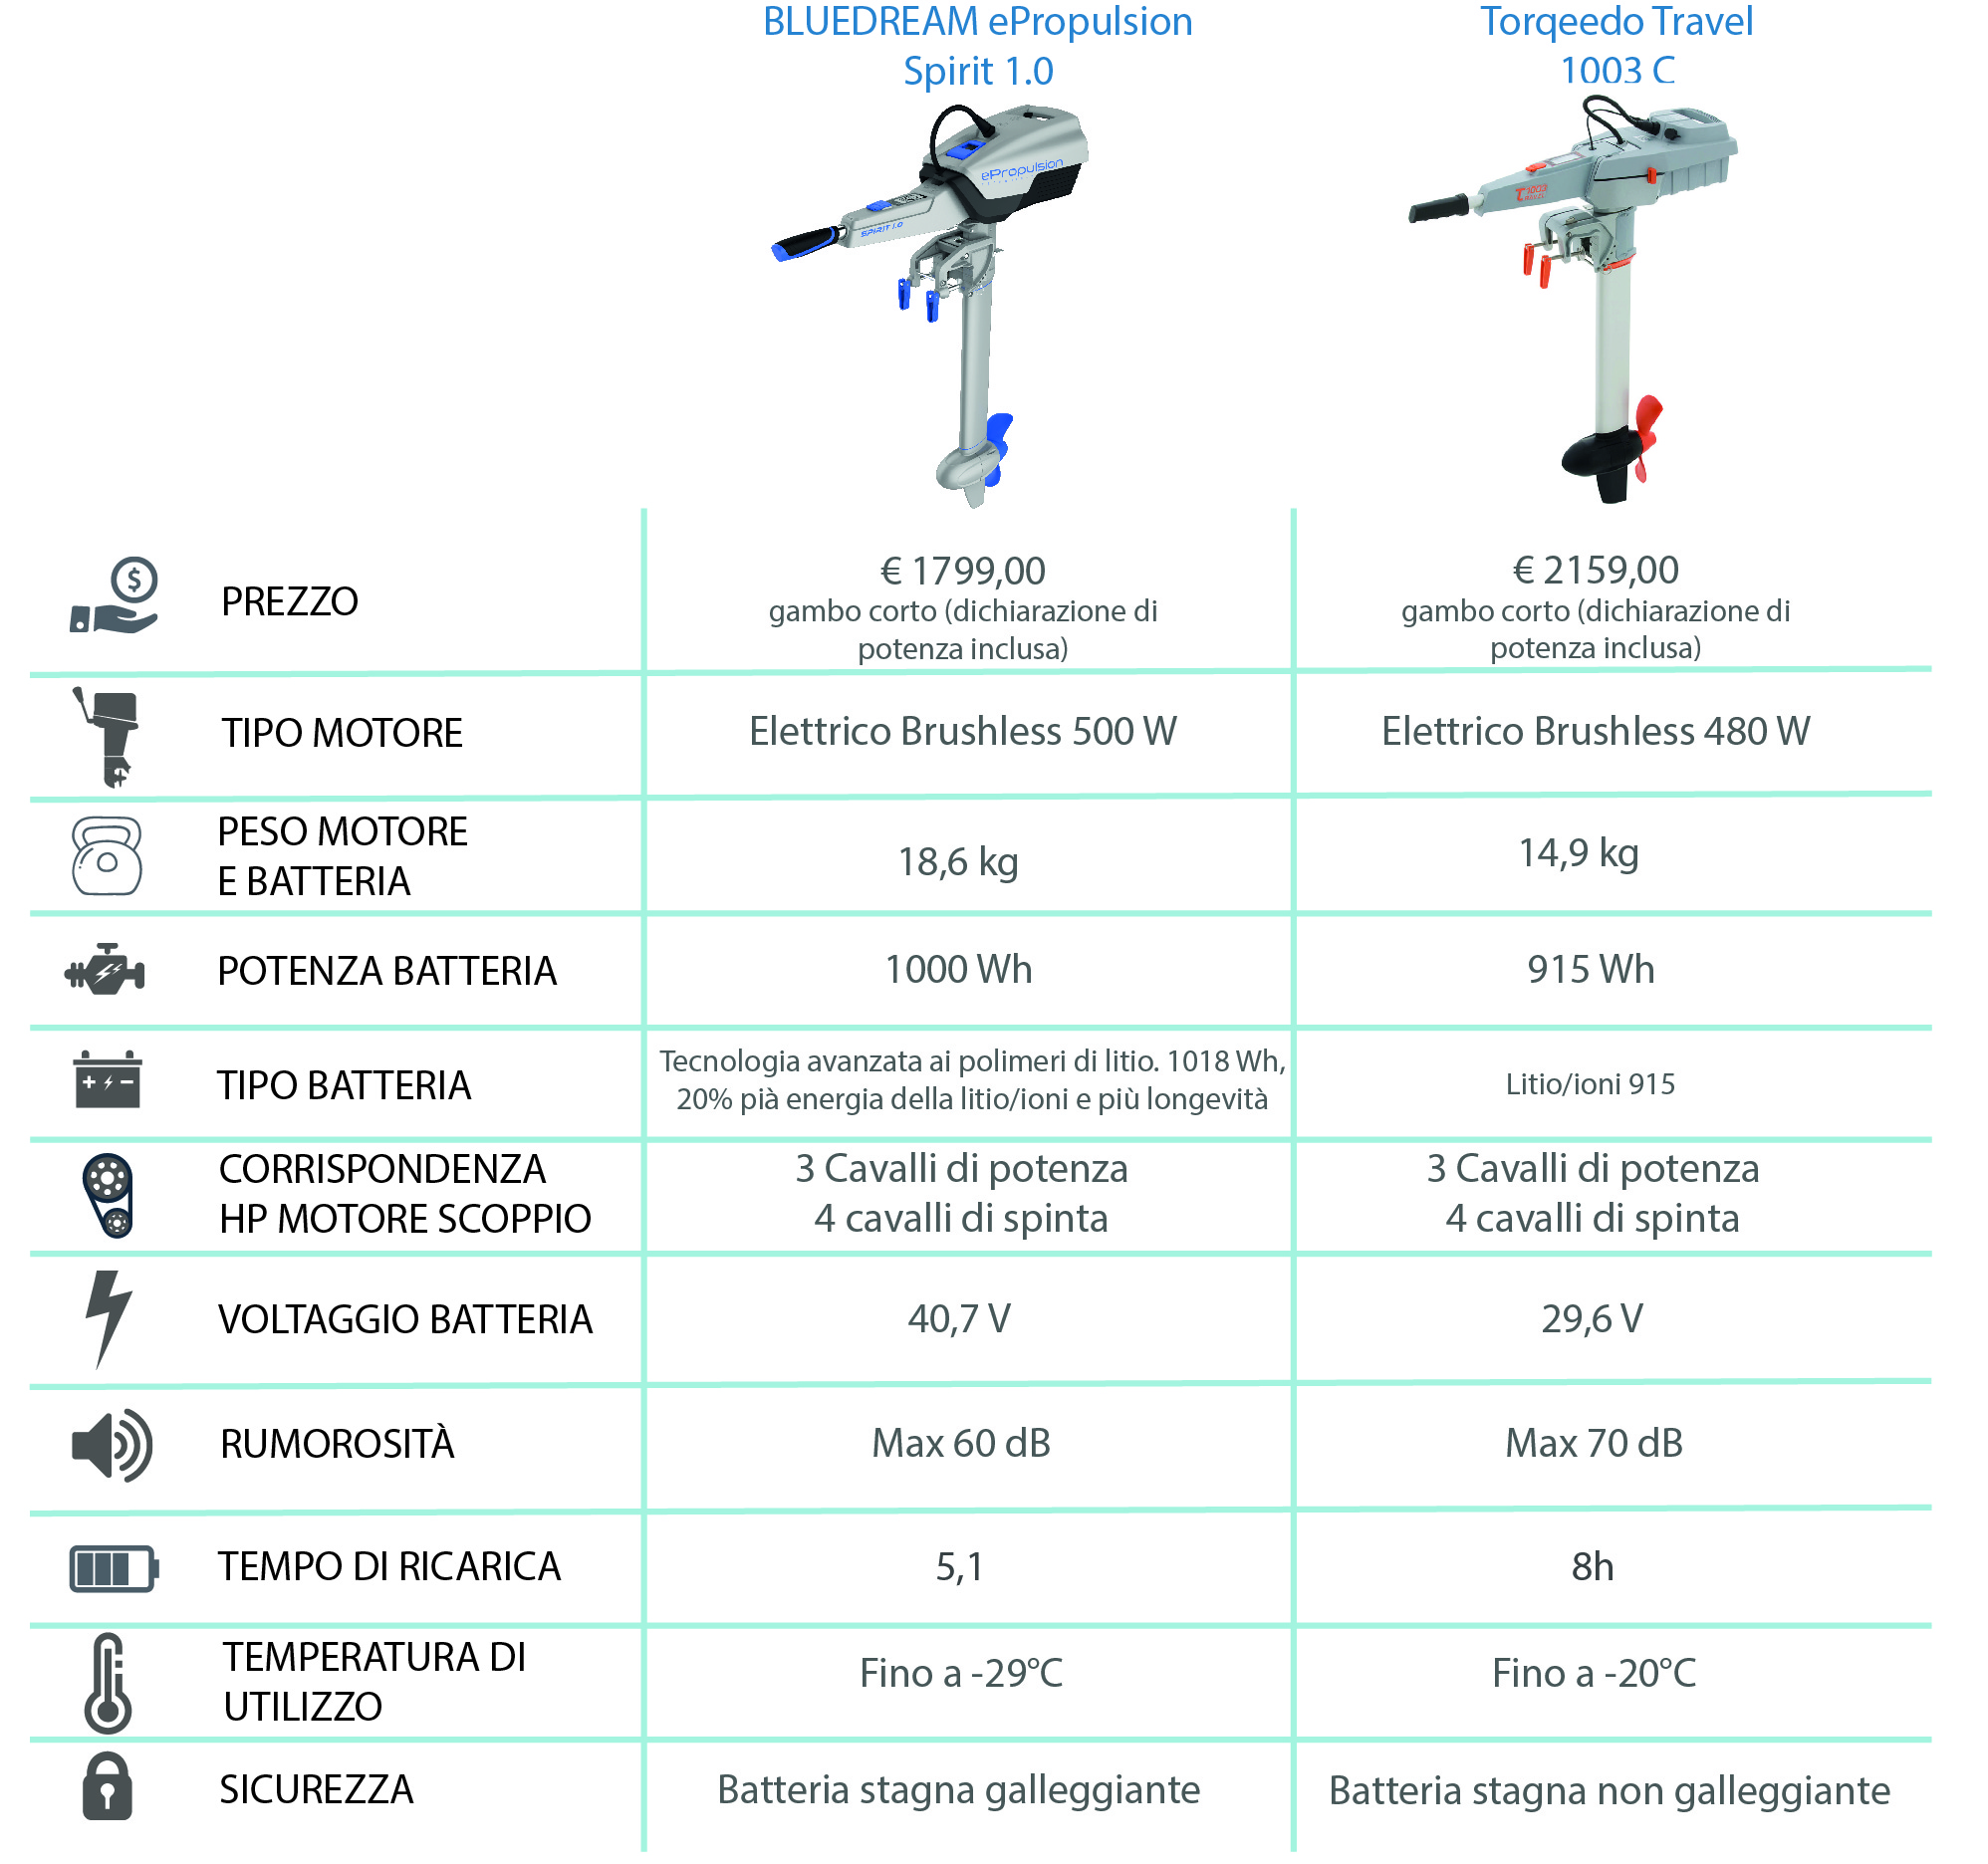 comparativa ePropulsion